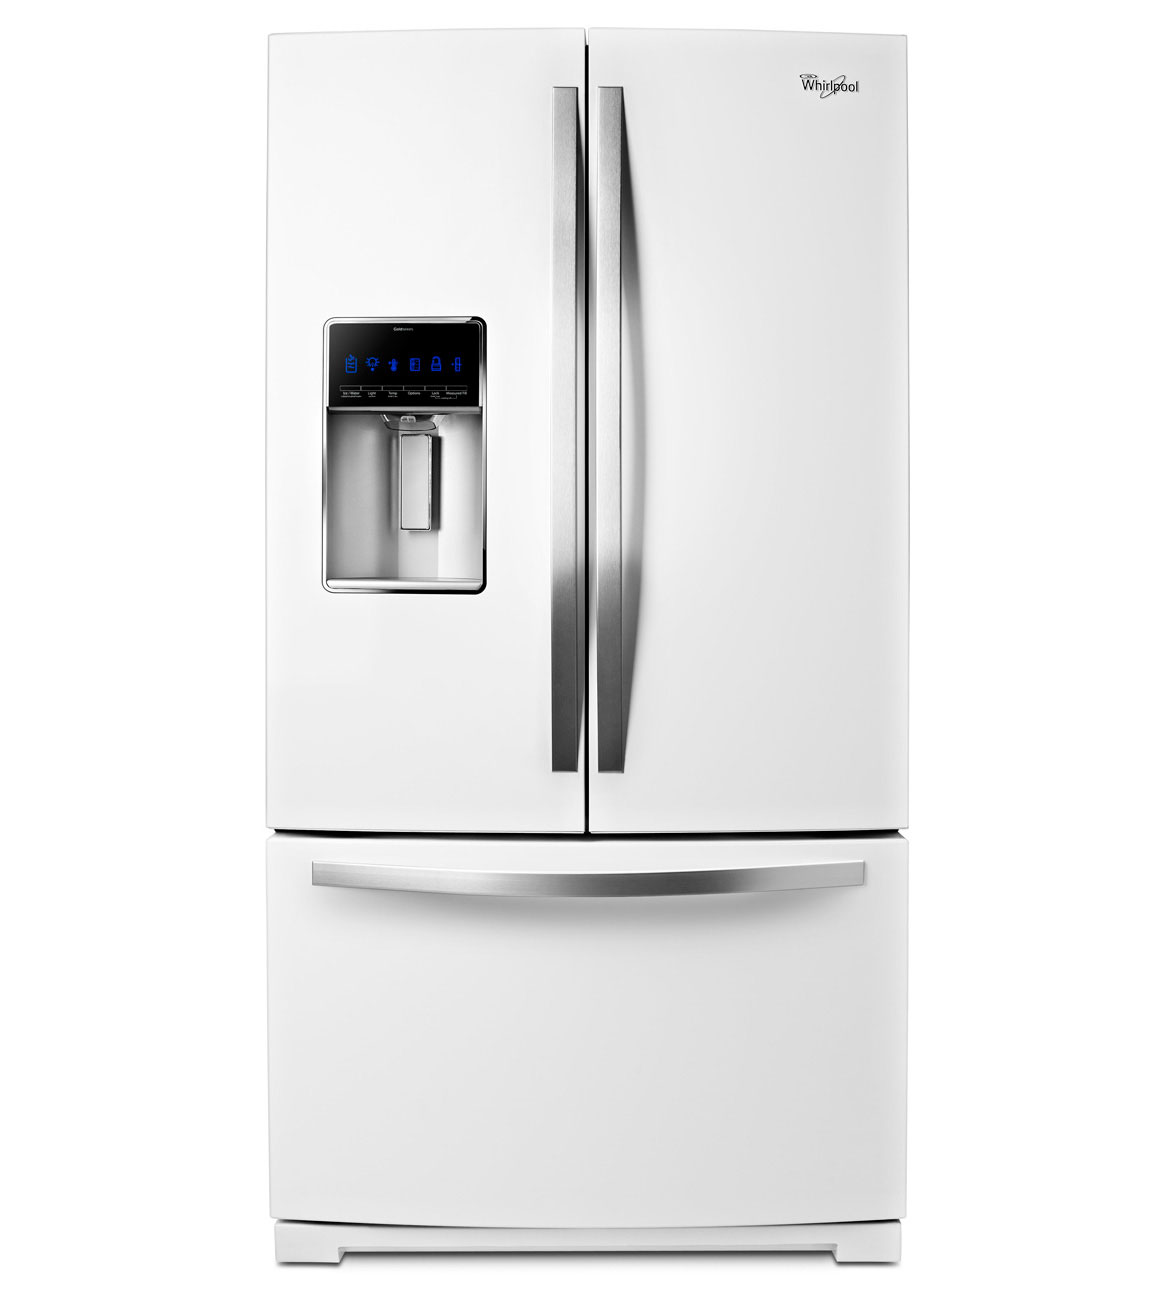 Whirlpool White Ice French Door Refrigerator